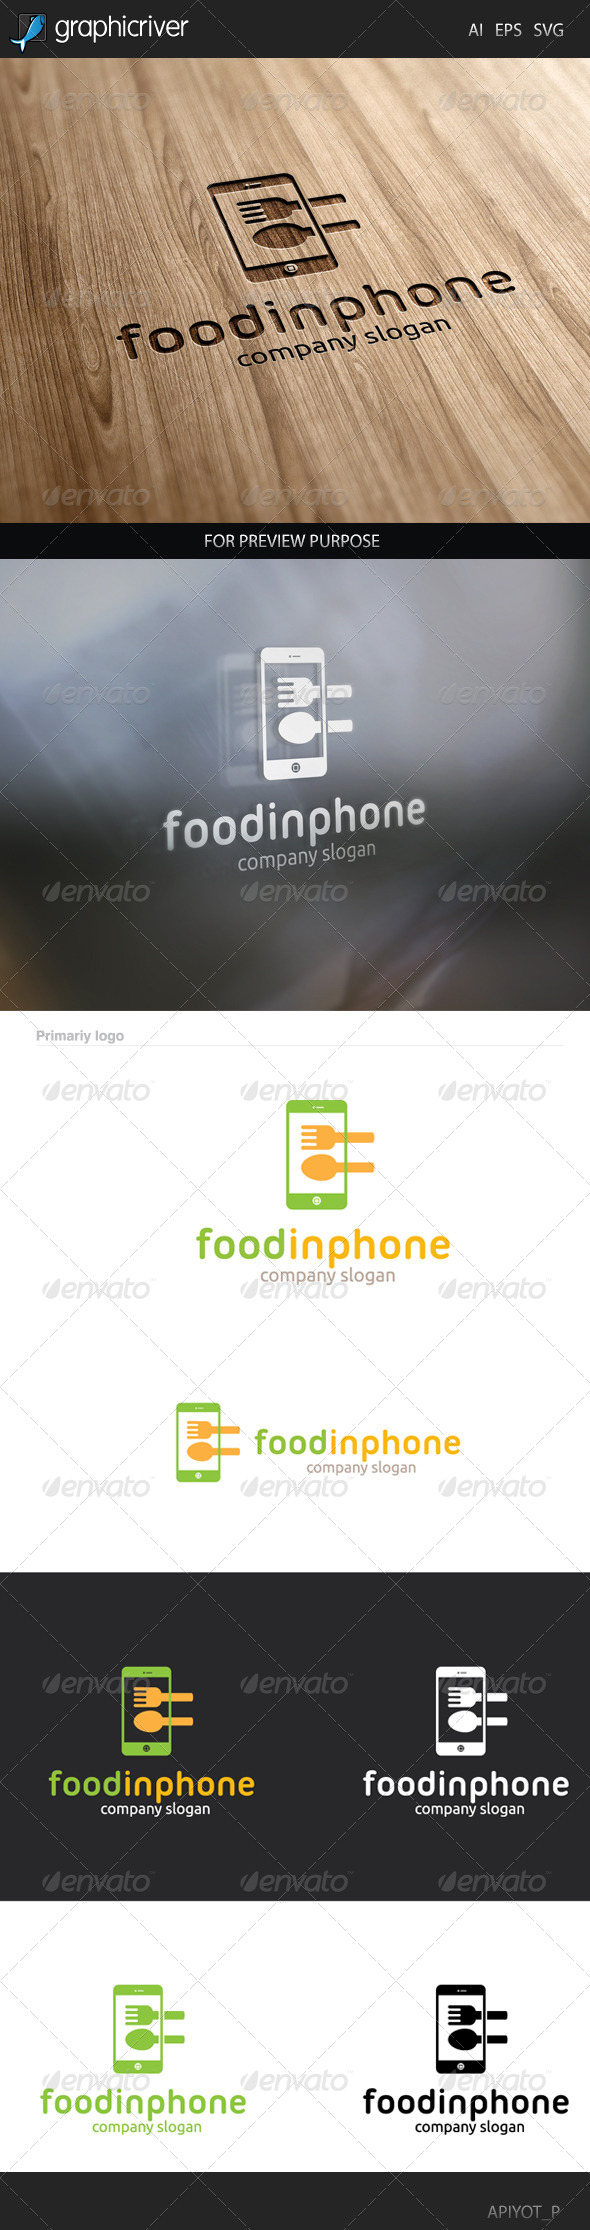 GraphicRiver Food Inphone 8305058